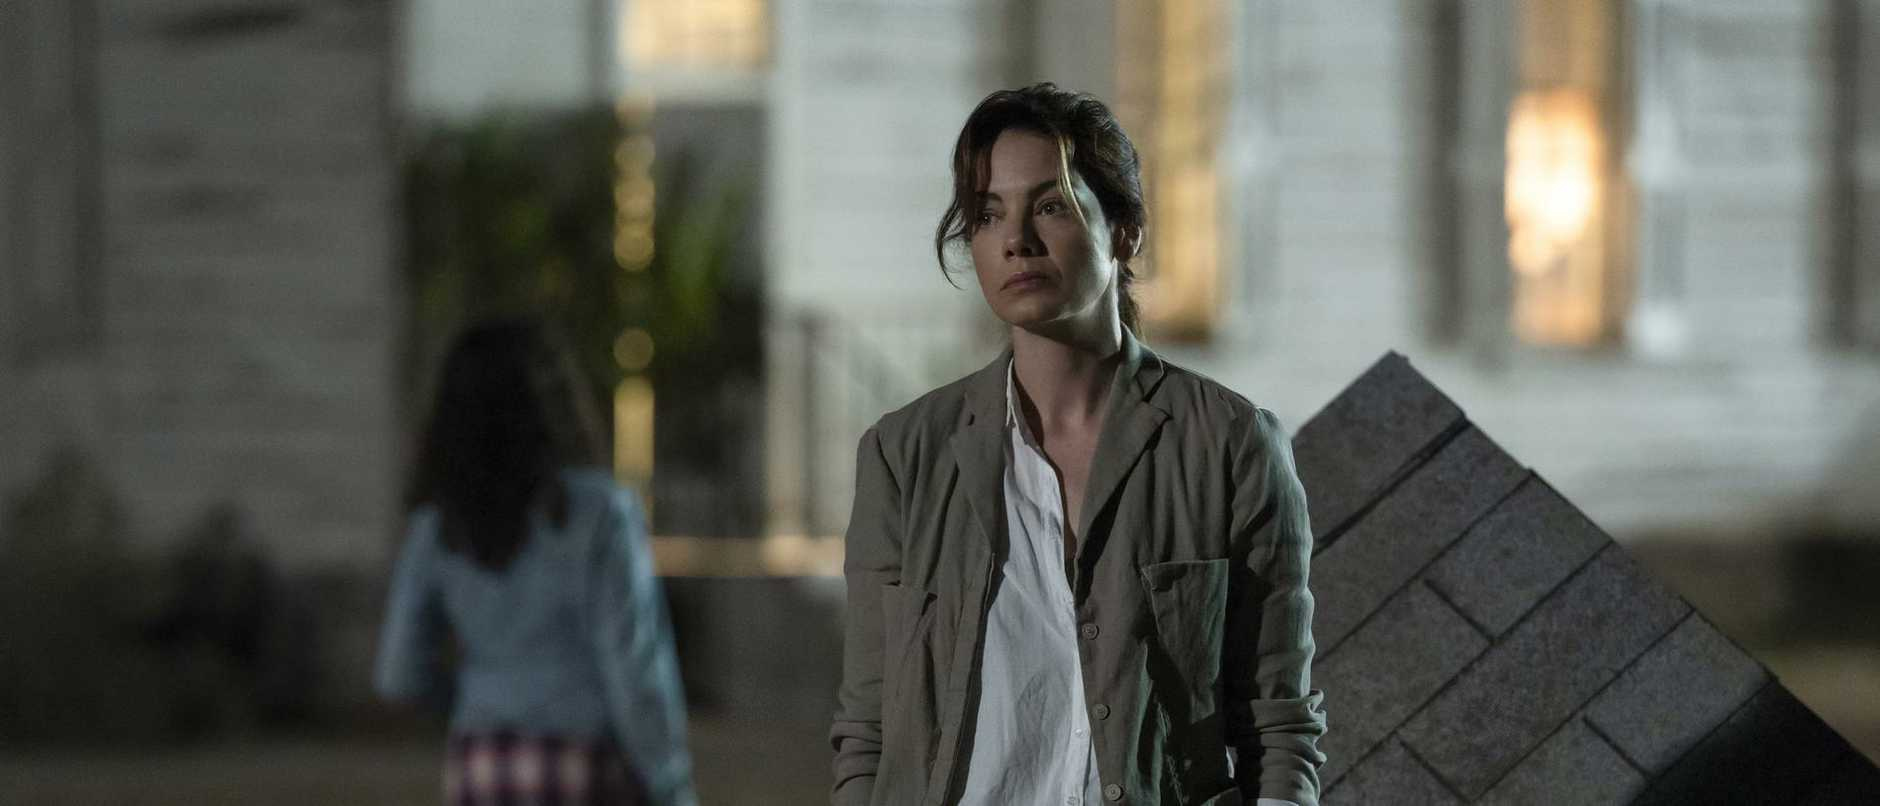 Michelle Monaghan stars in the new Netflix drama Messiah.